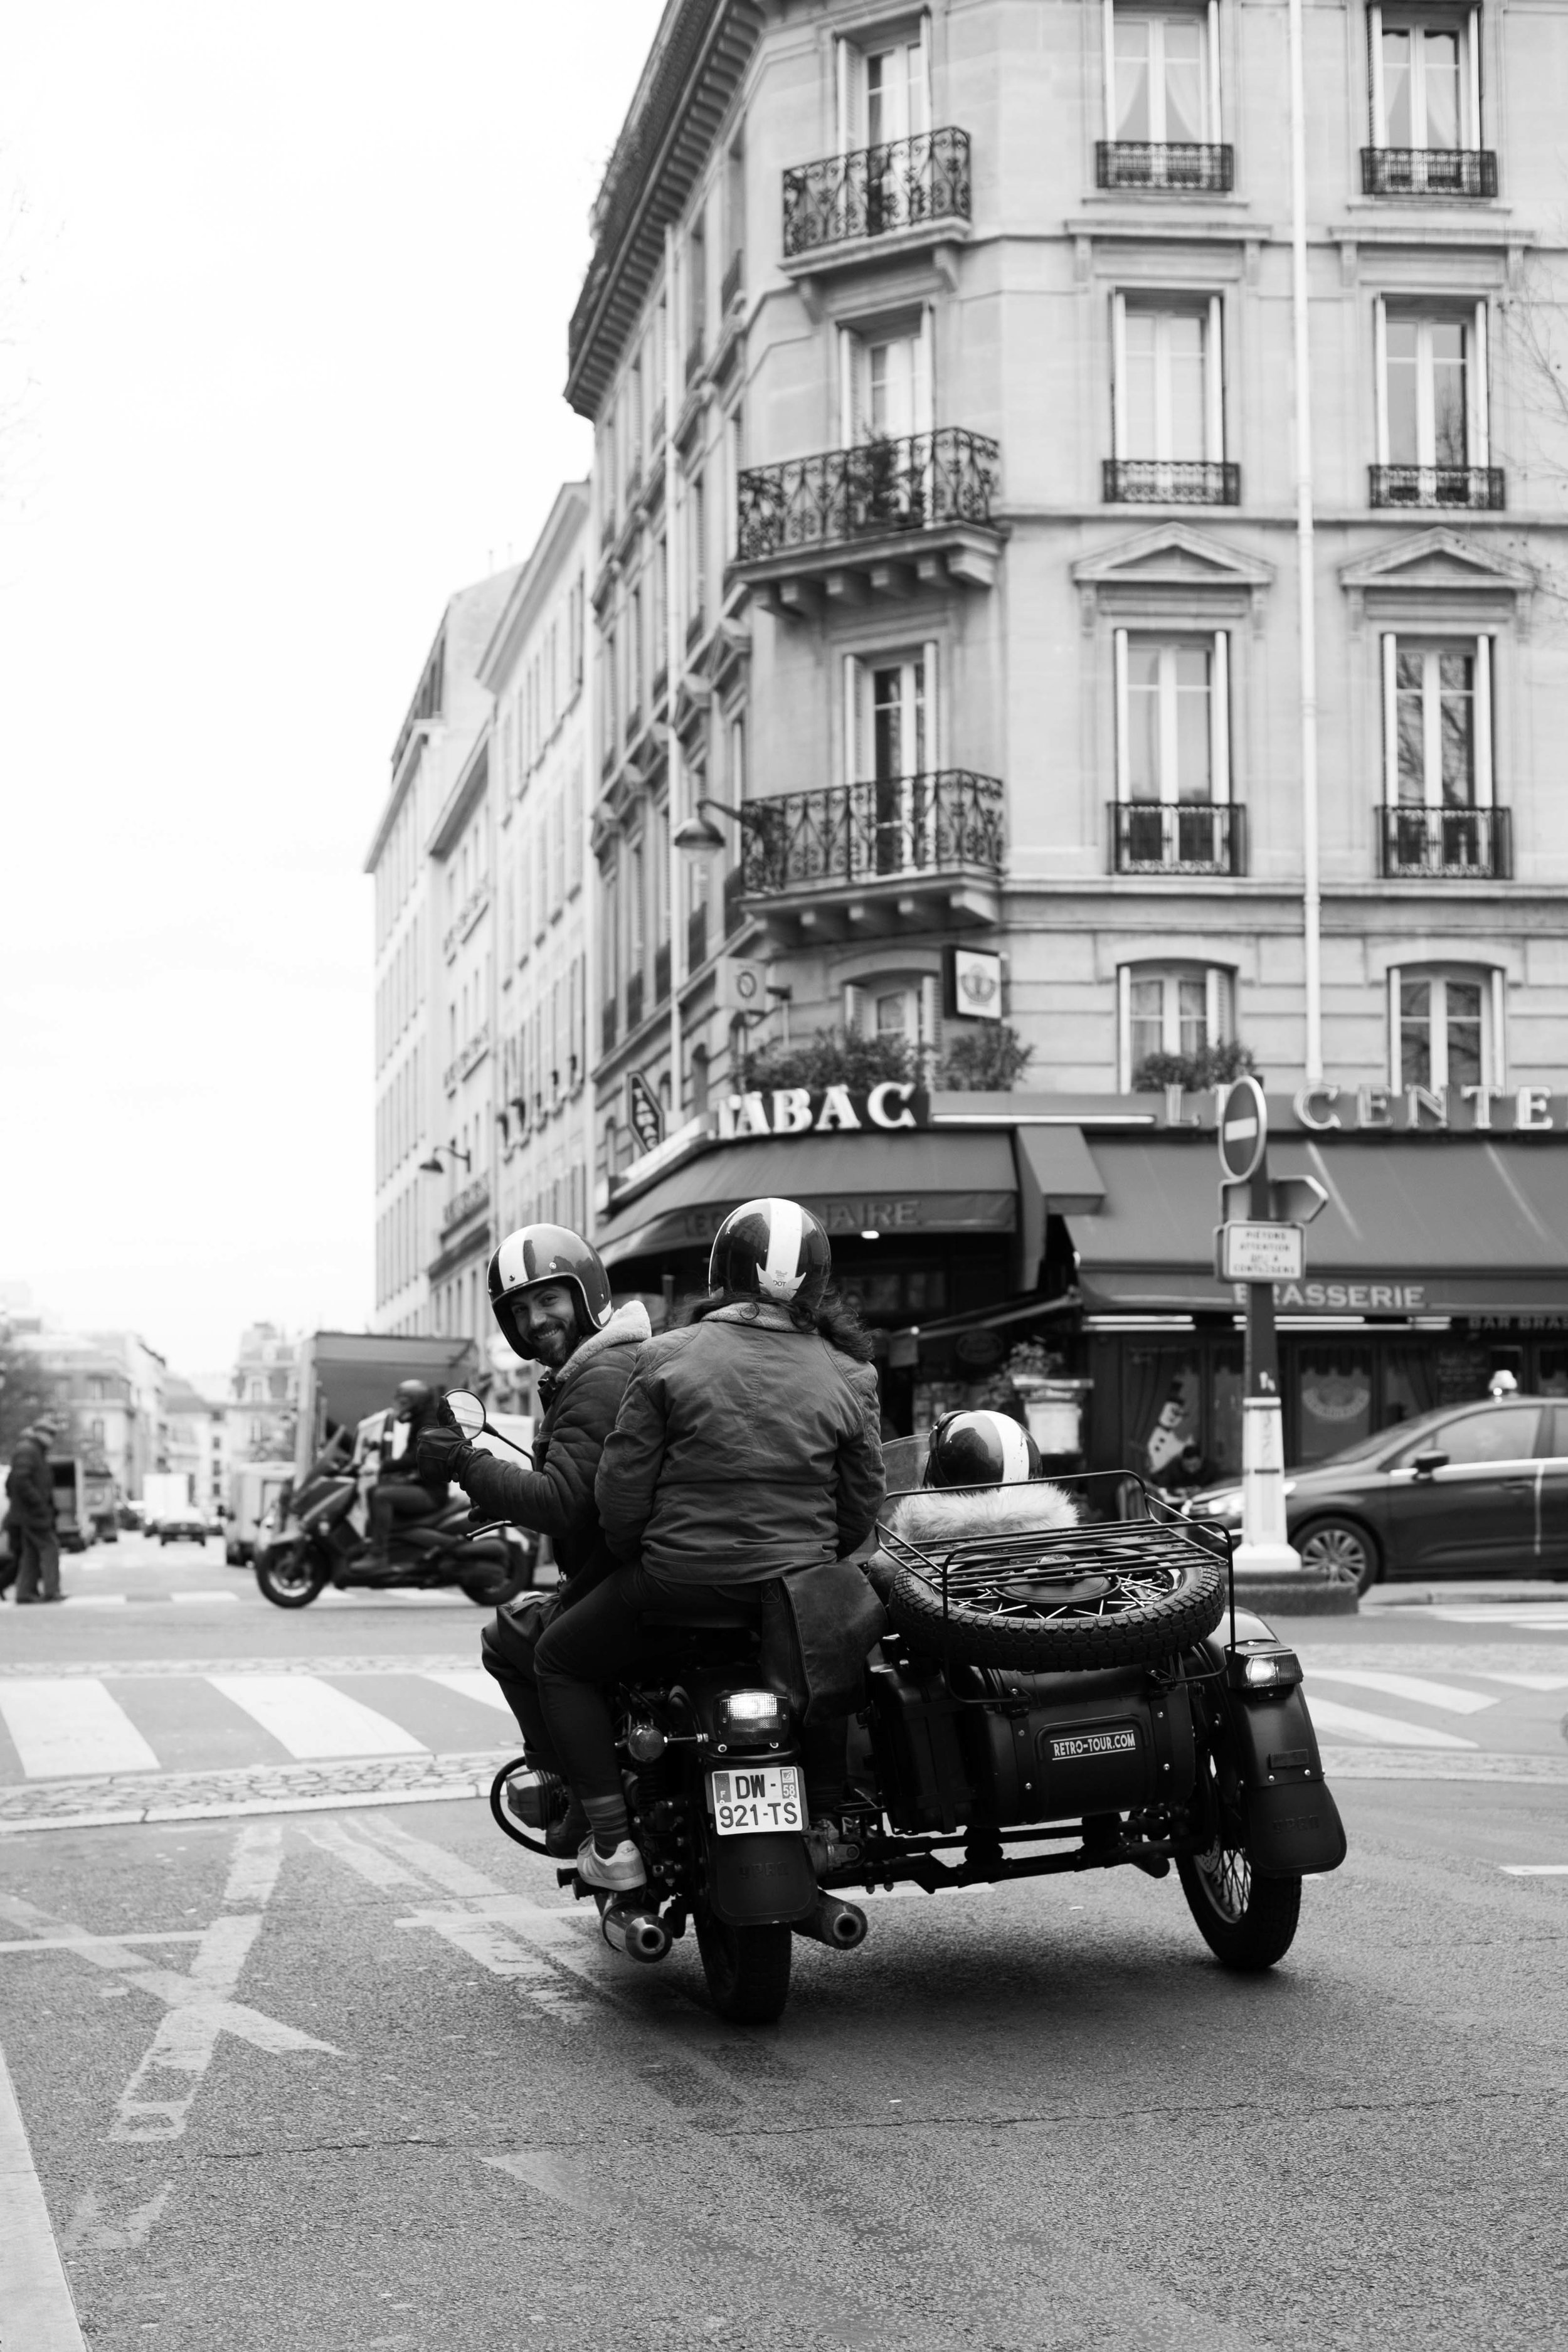 Charlotte Margot Photography - Vintage Motorcycle tour in Paris